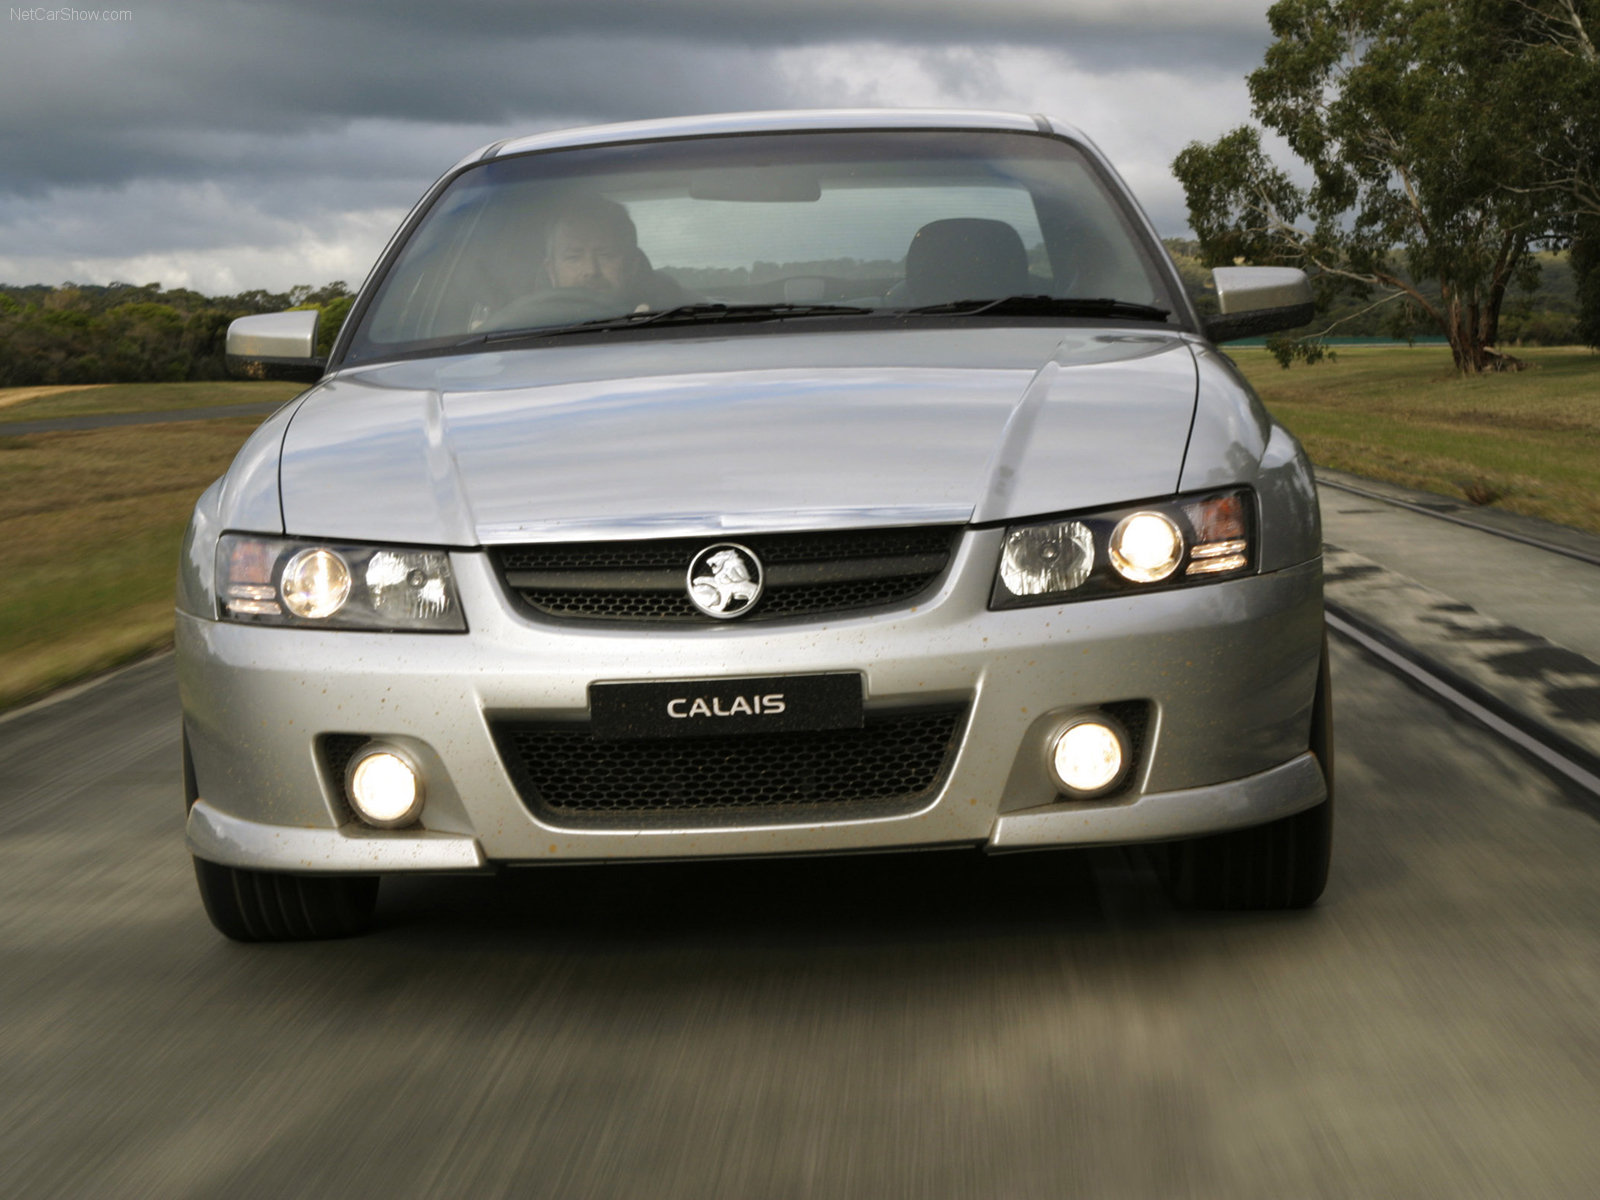 All Types  2007 Holden Commodore Sv6  19s20s Car and Autos All